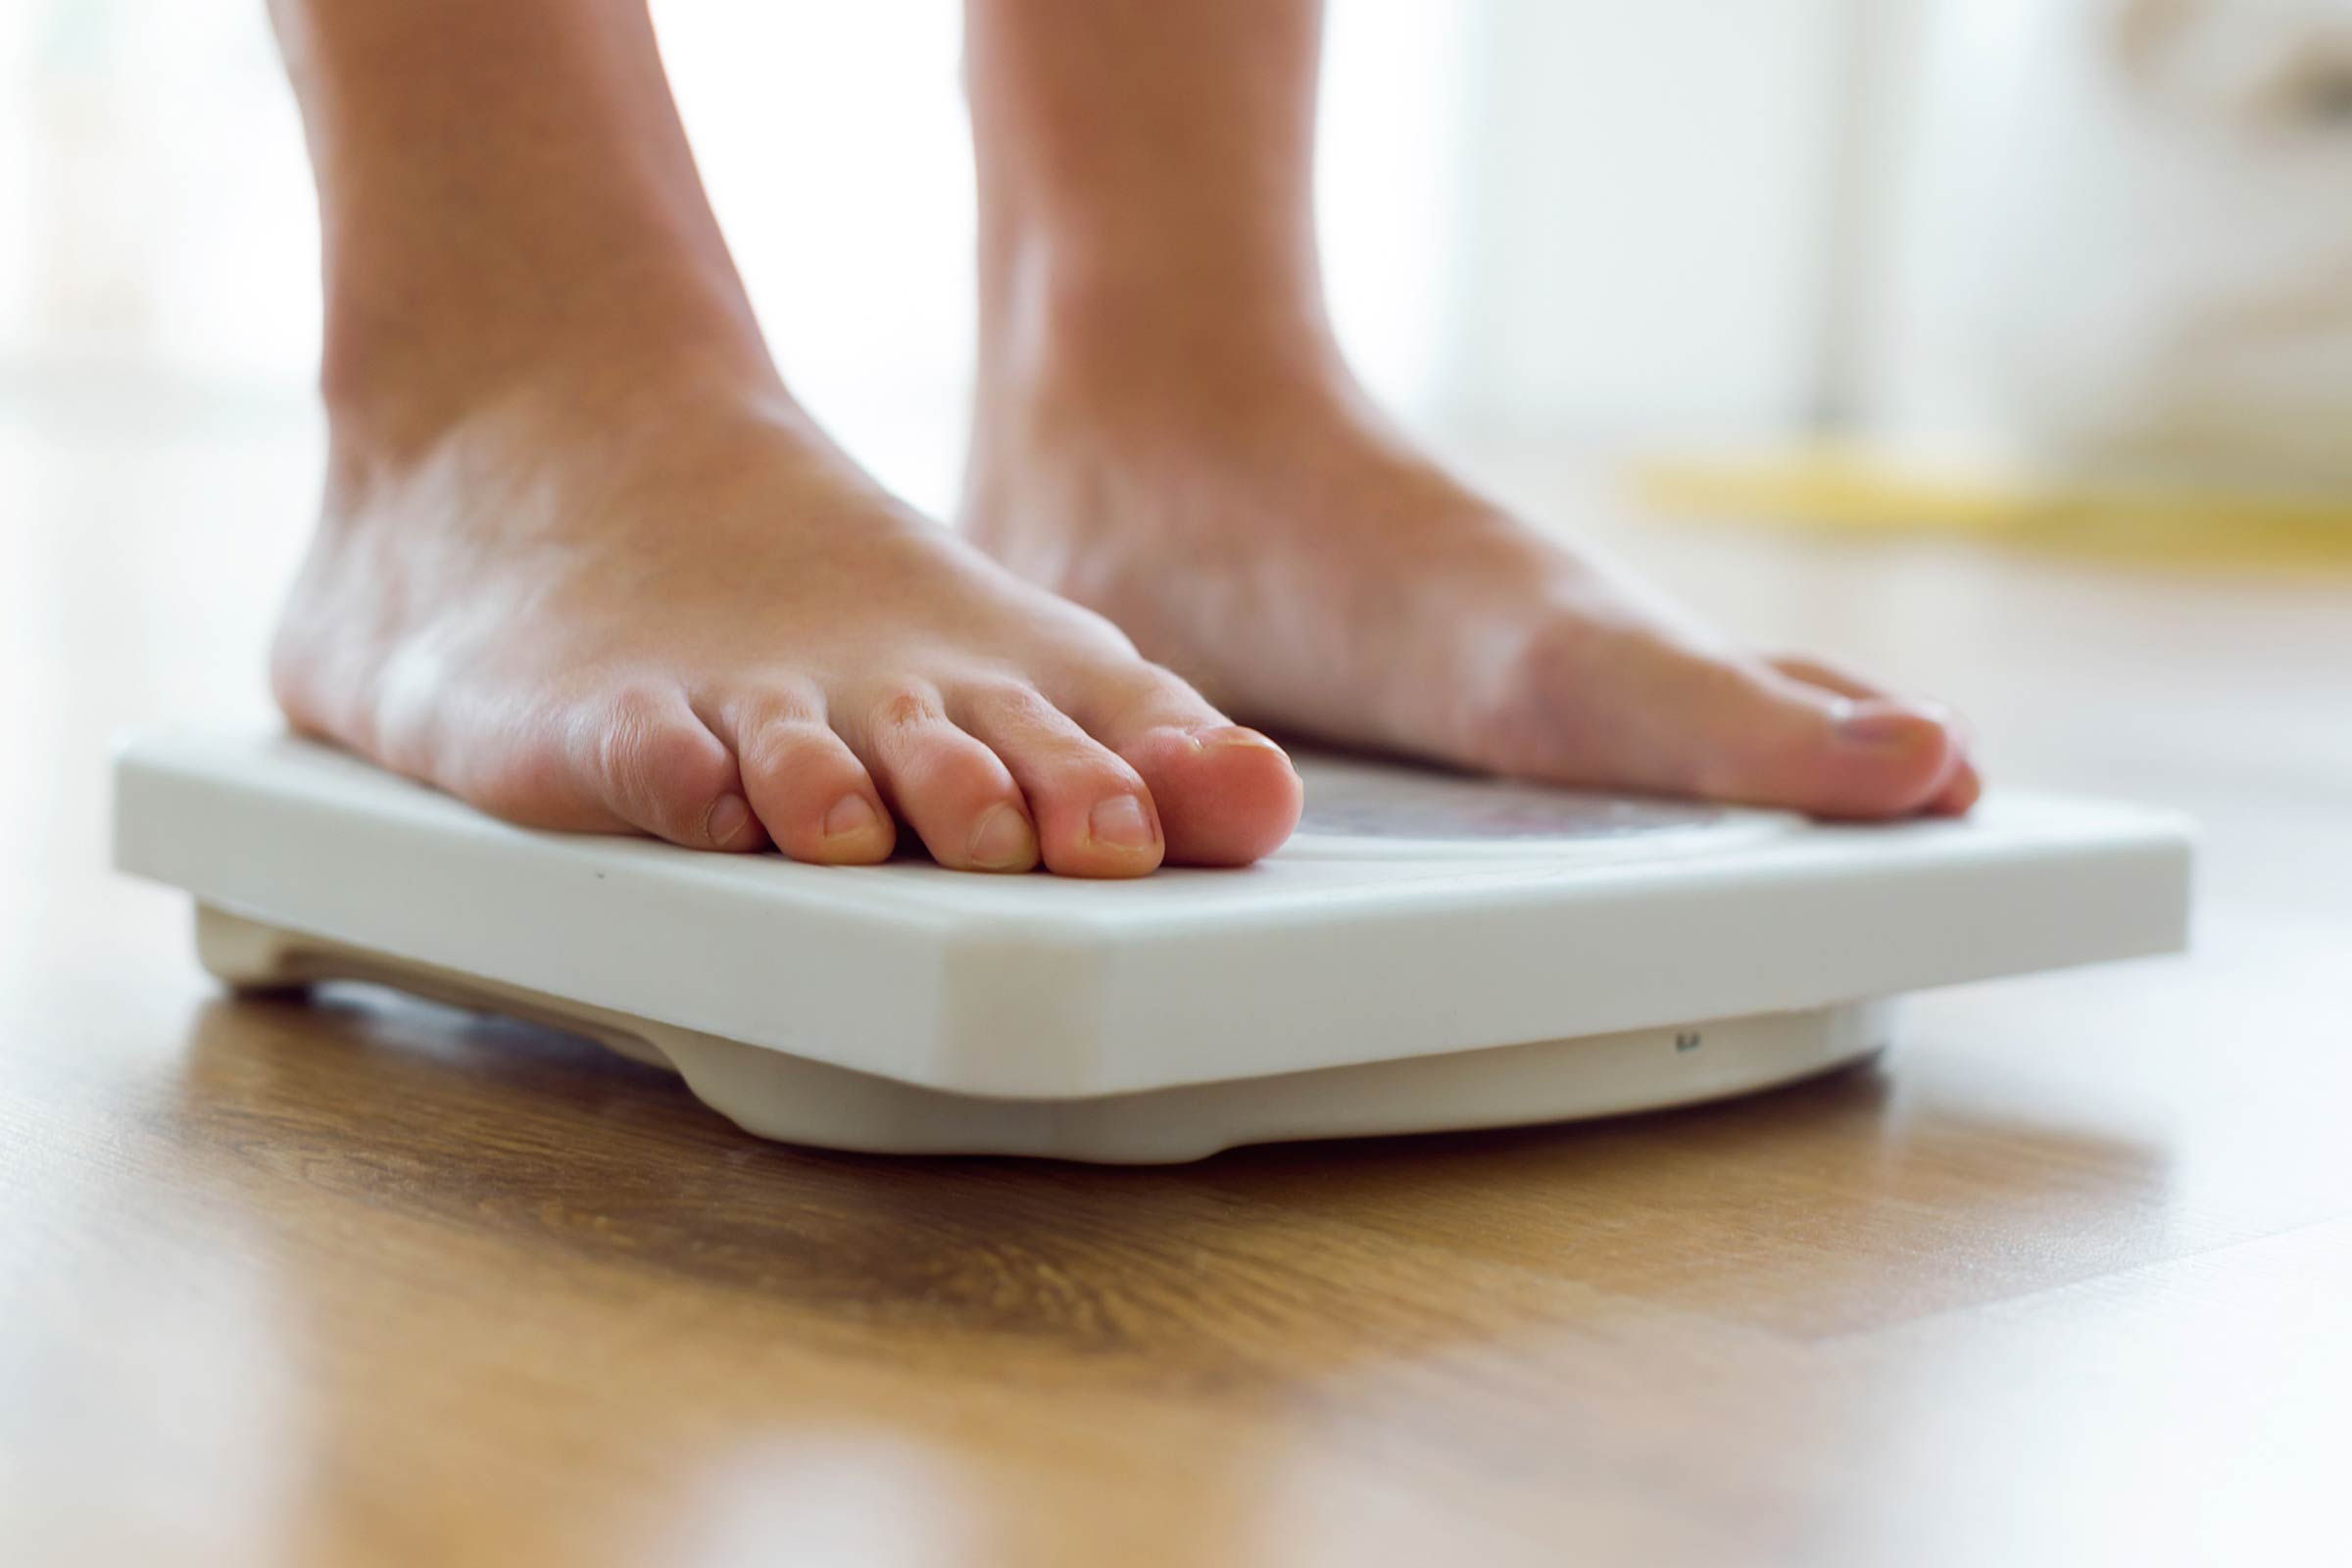 Did You Know? Diabetes Can Lead to Unexplained Weight Loss